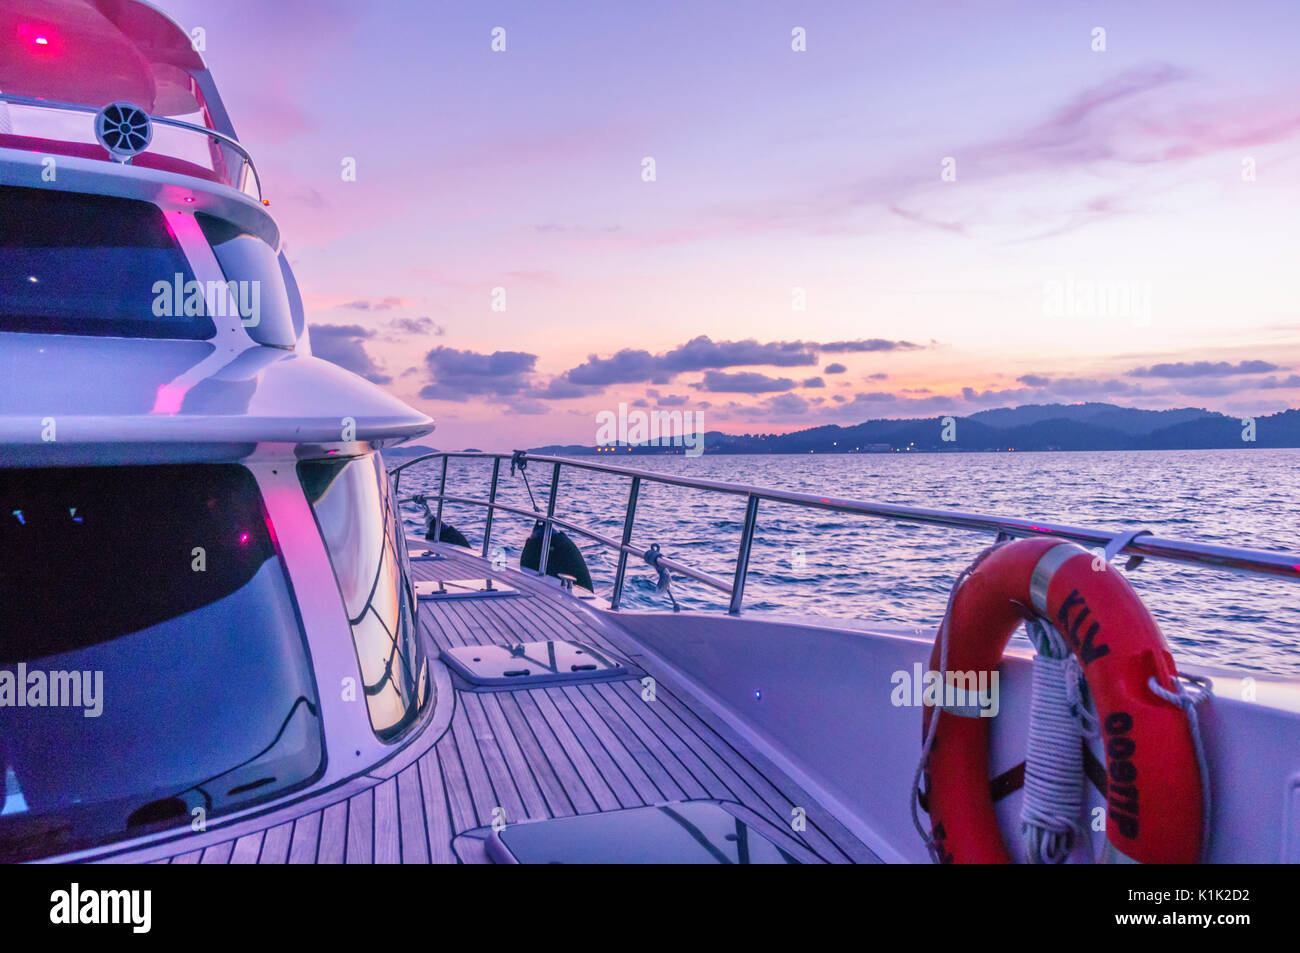 Deck of a ship shot during the purple light of dusk. The wooden deck, beautiful curved glass and modern shape show the luxury and beauty of these modern ships - Stock Image